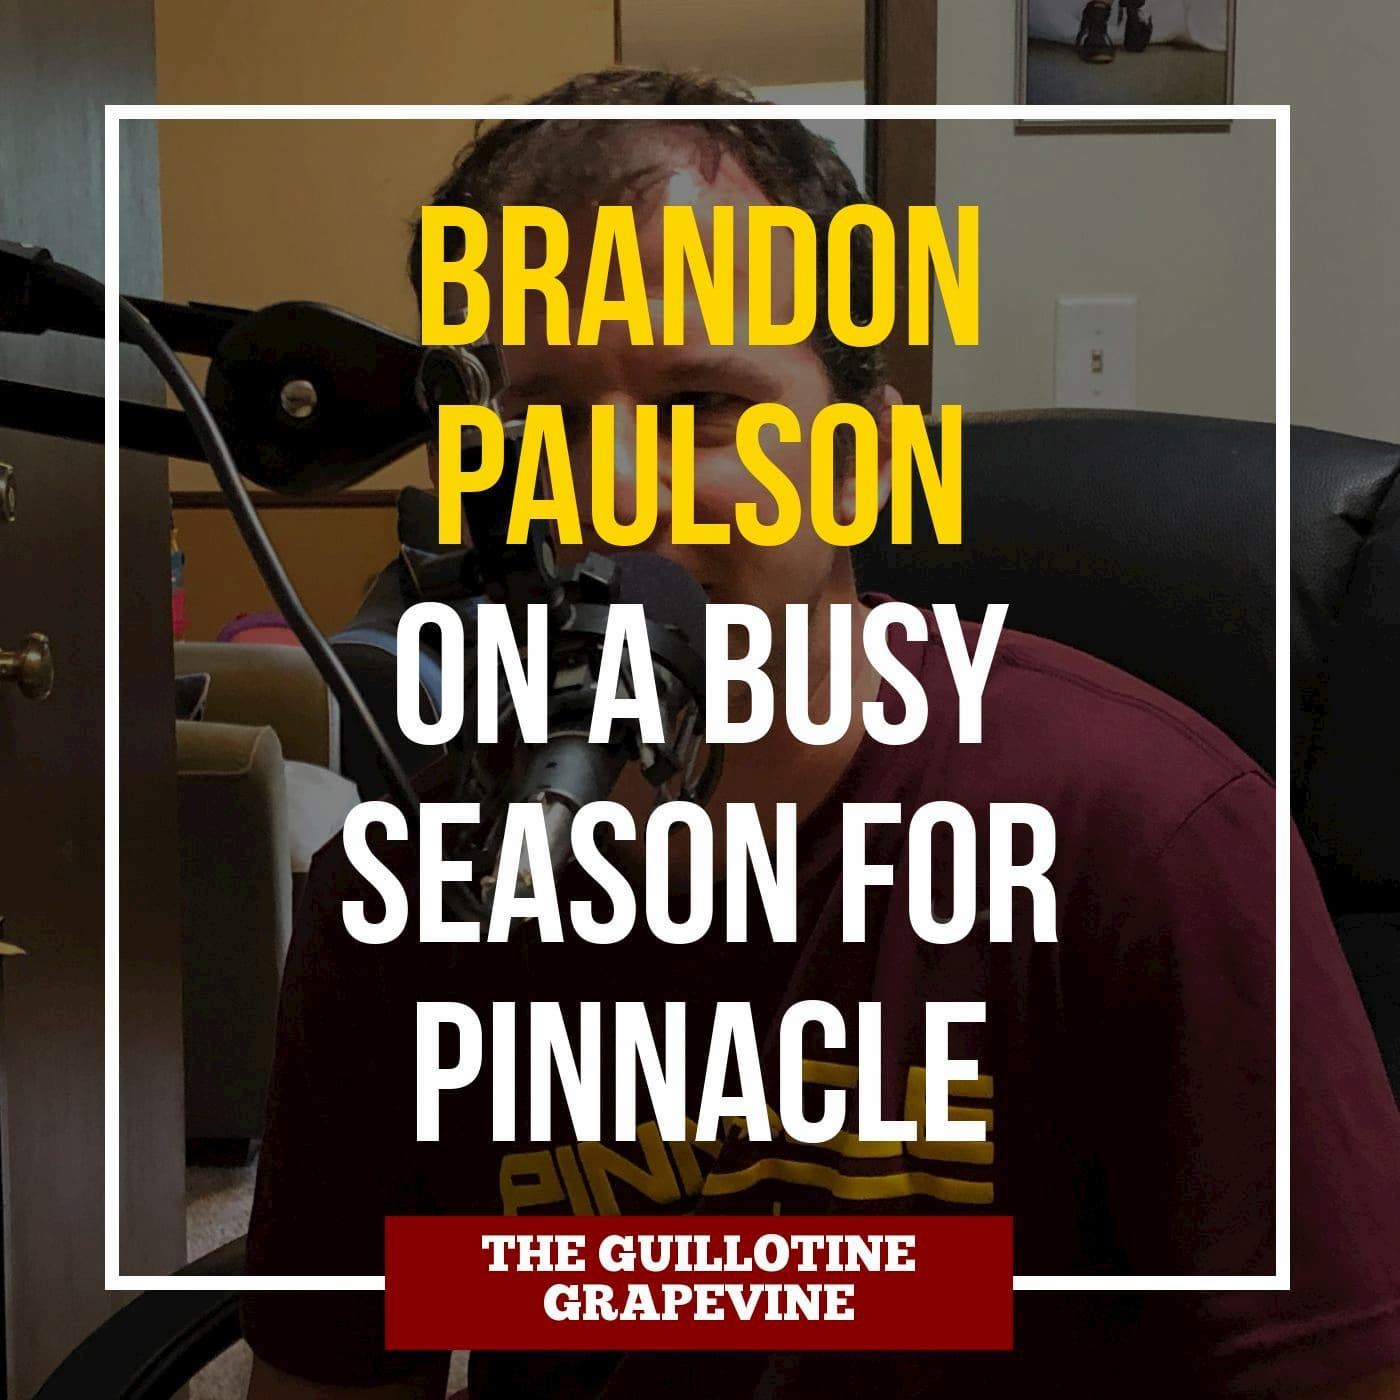 Brandon Paulson and PINnacle's busy summer on the mats - GG56